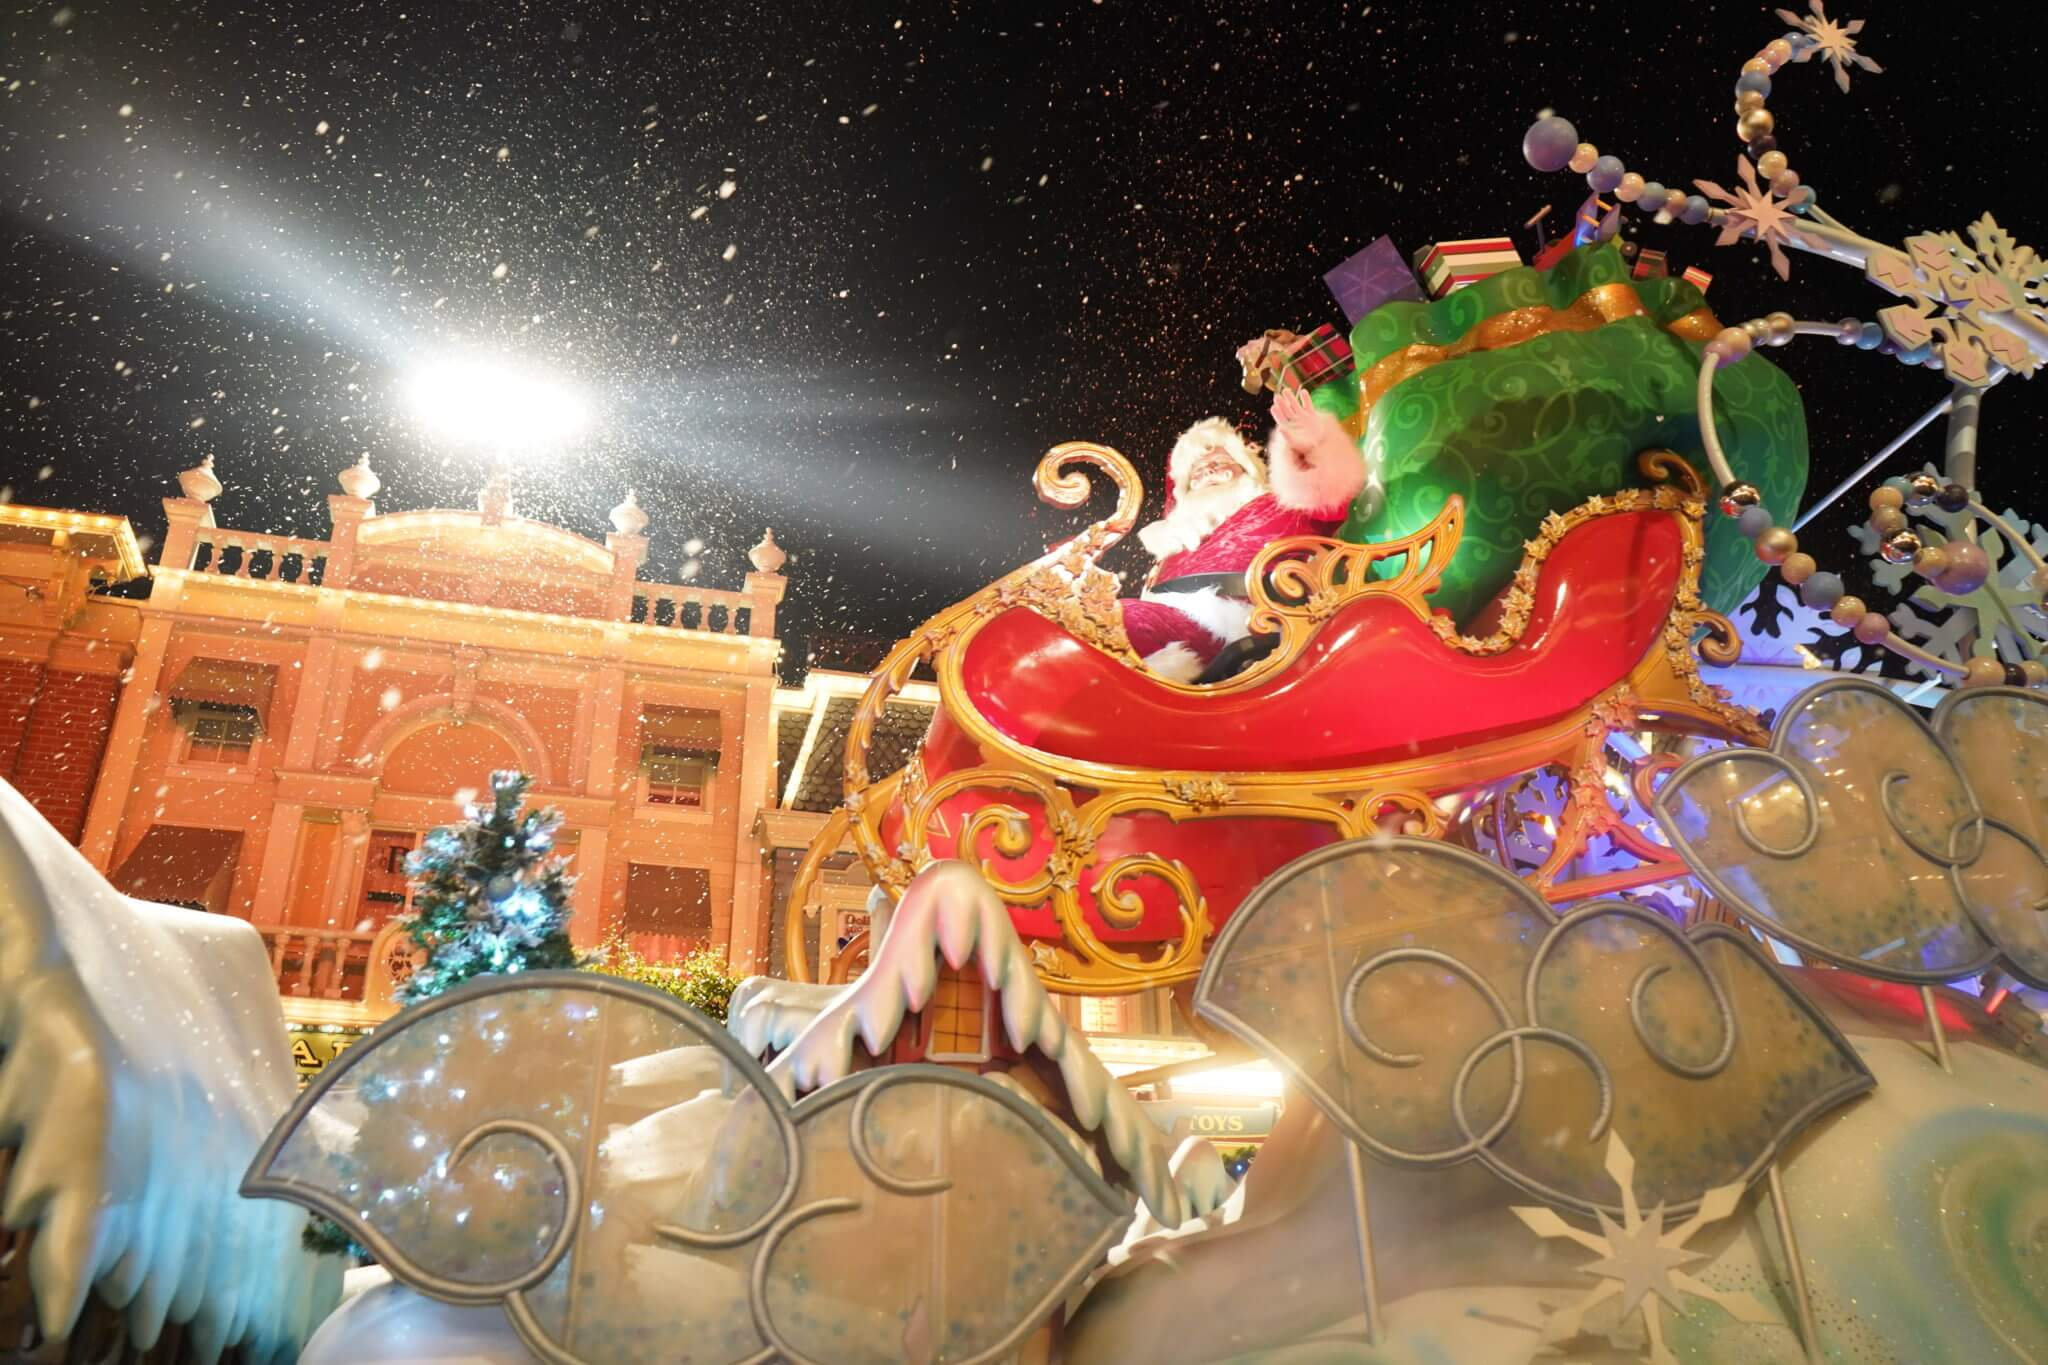 Santa in Once Upon a Christmastime Parade on Main Street USA in Disney World